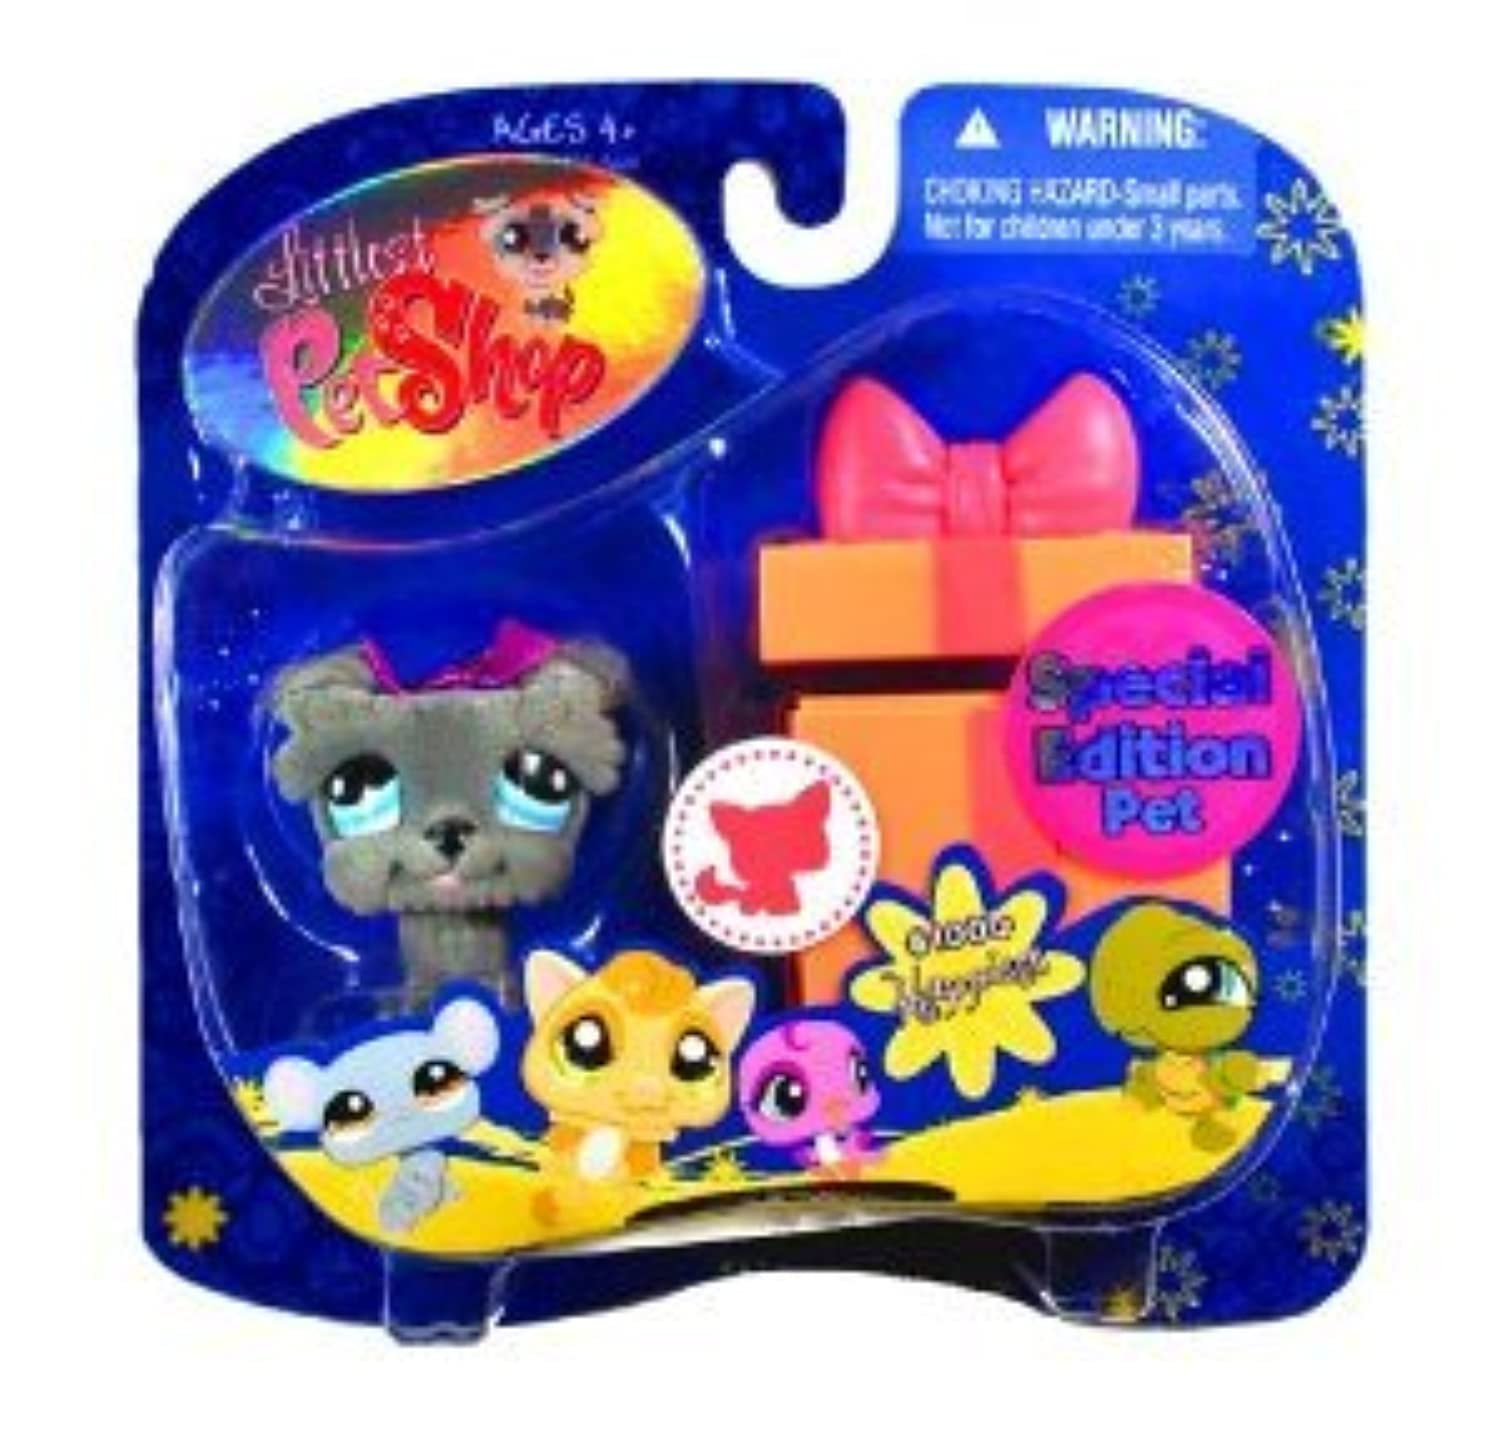 Littlest Pet Shop (リトルペットショップ) Special Edition Fuzzy Grey Schnauzer with Bow(並行輸入)